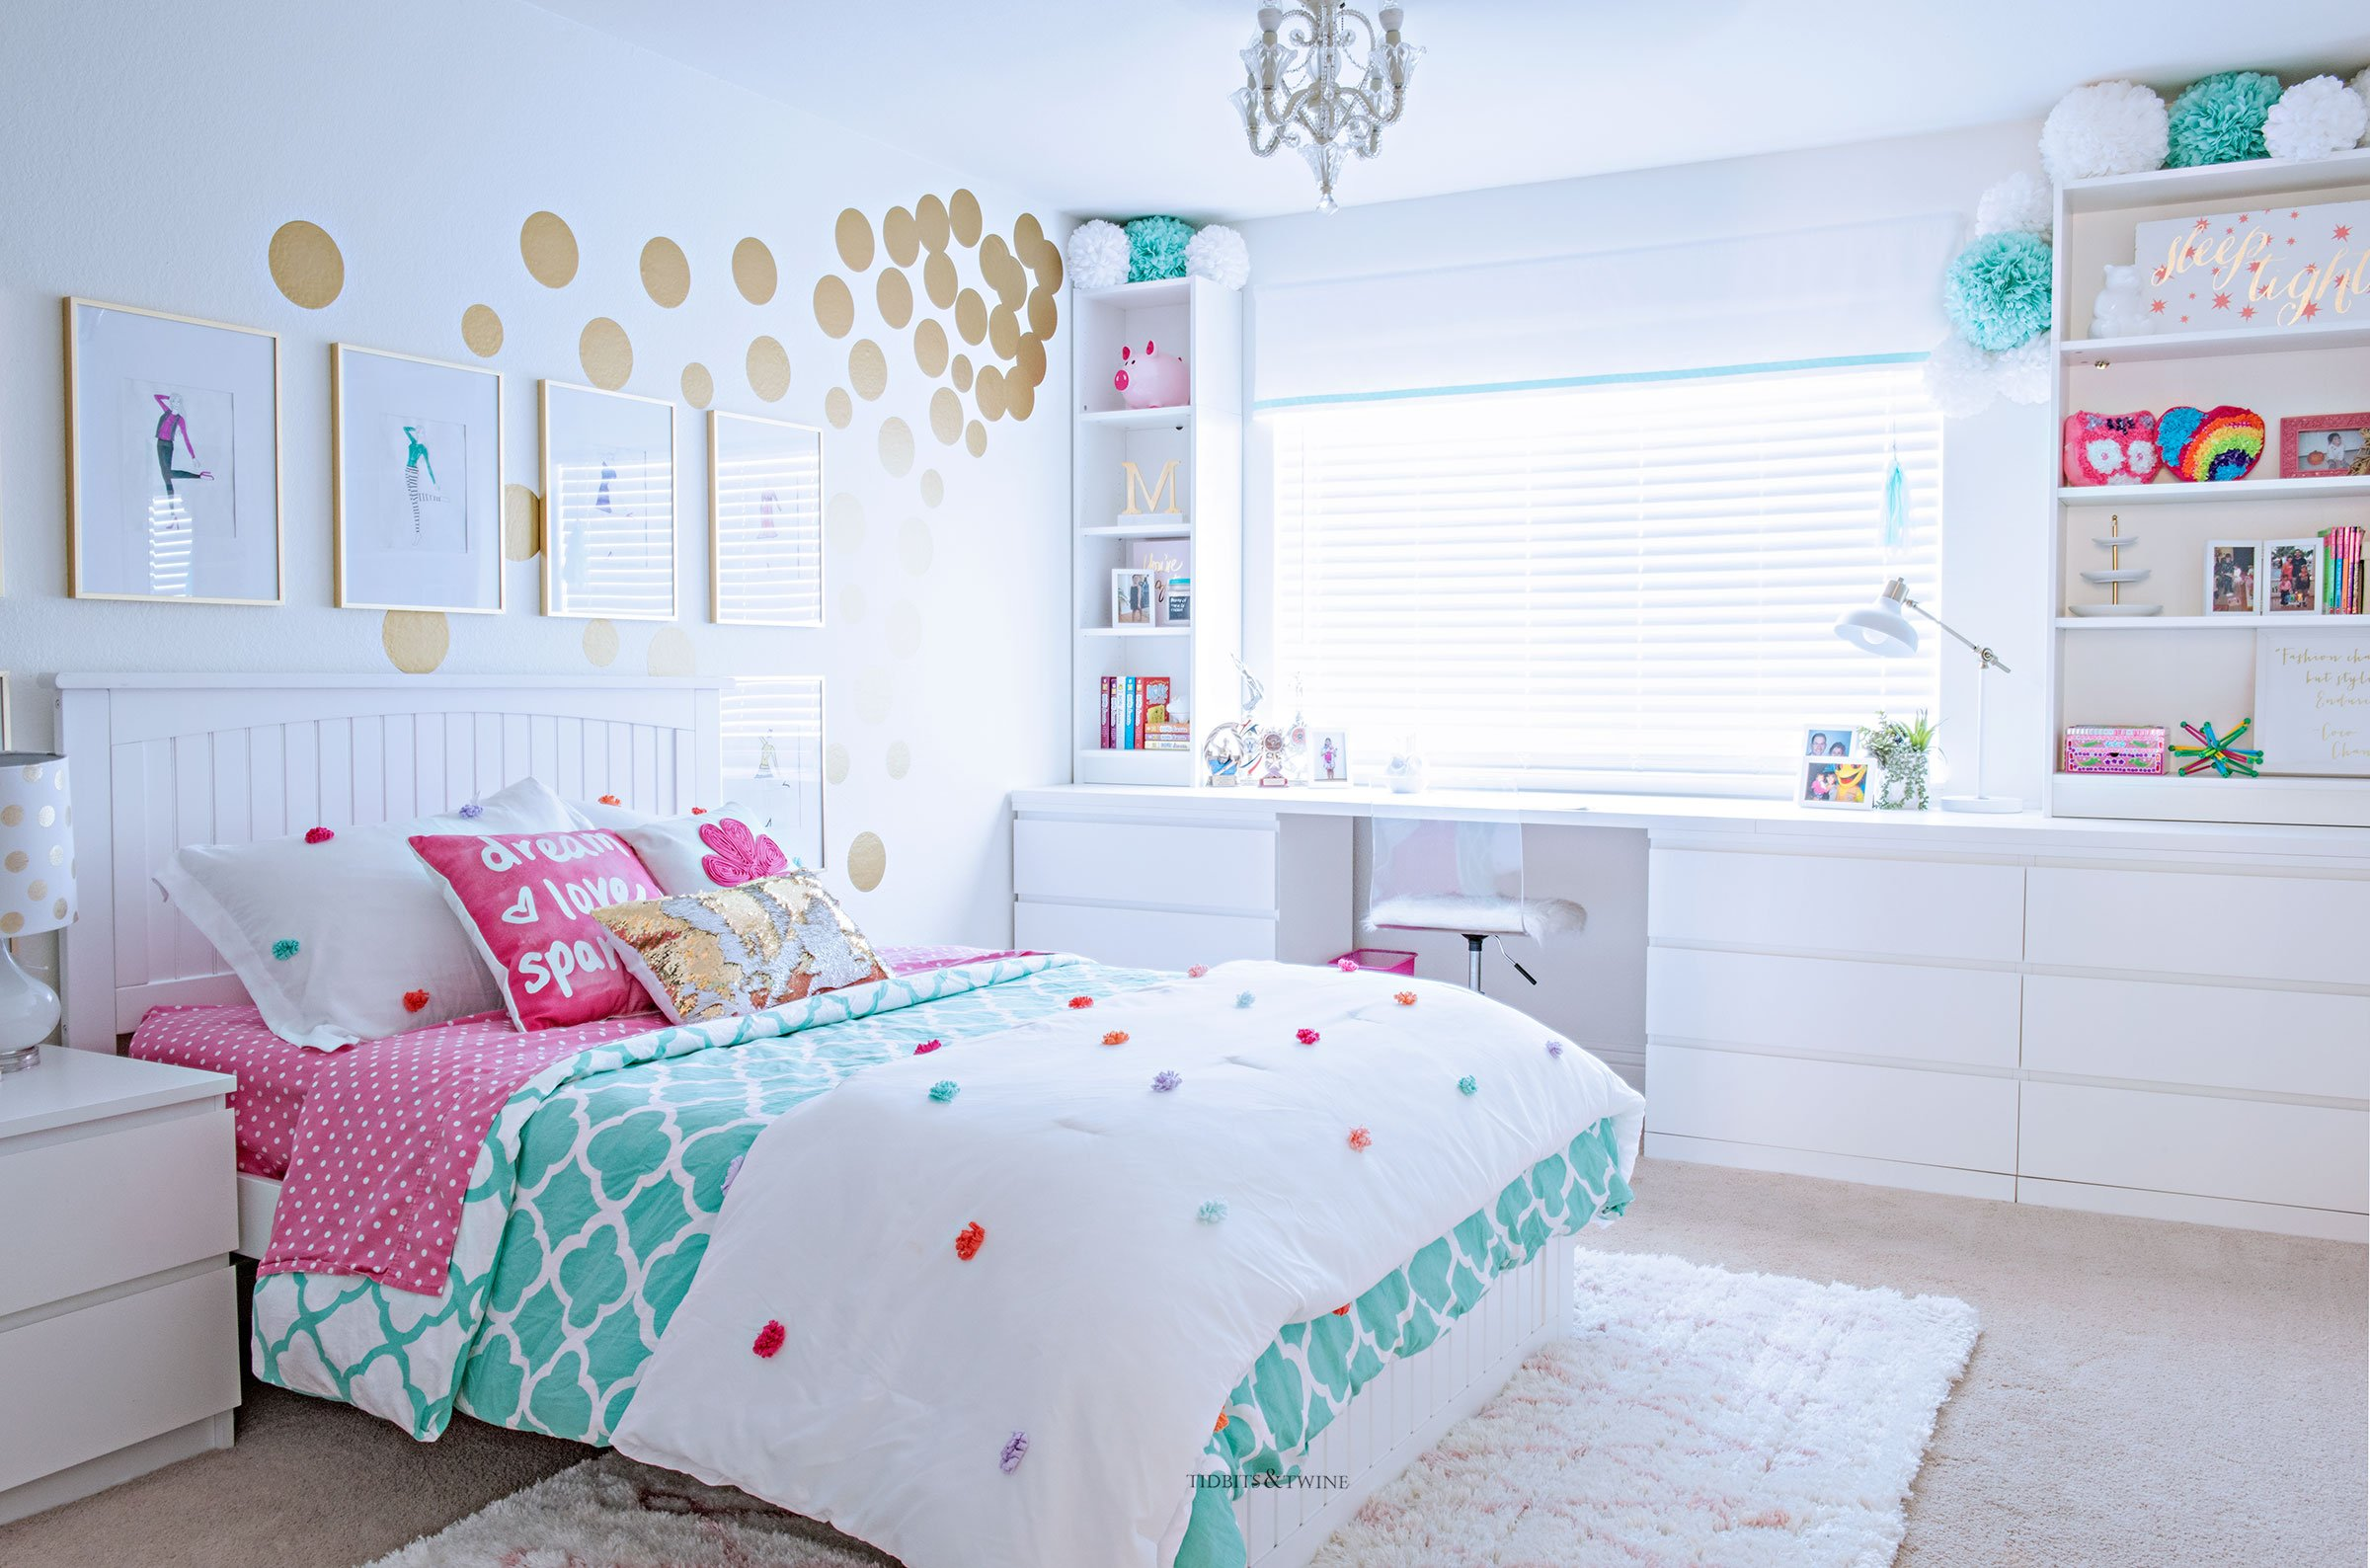 Teen/Tween Girls Bedroom Makeover Idea on a Budget ... on Decoration Room For Girl  id=51190